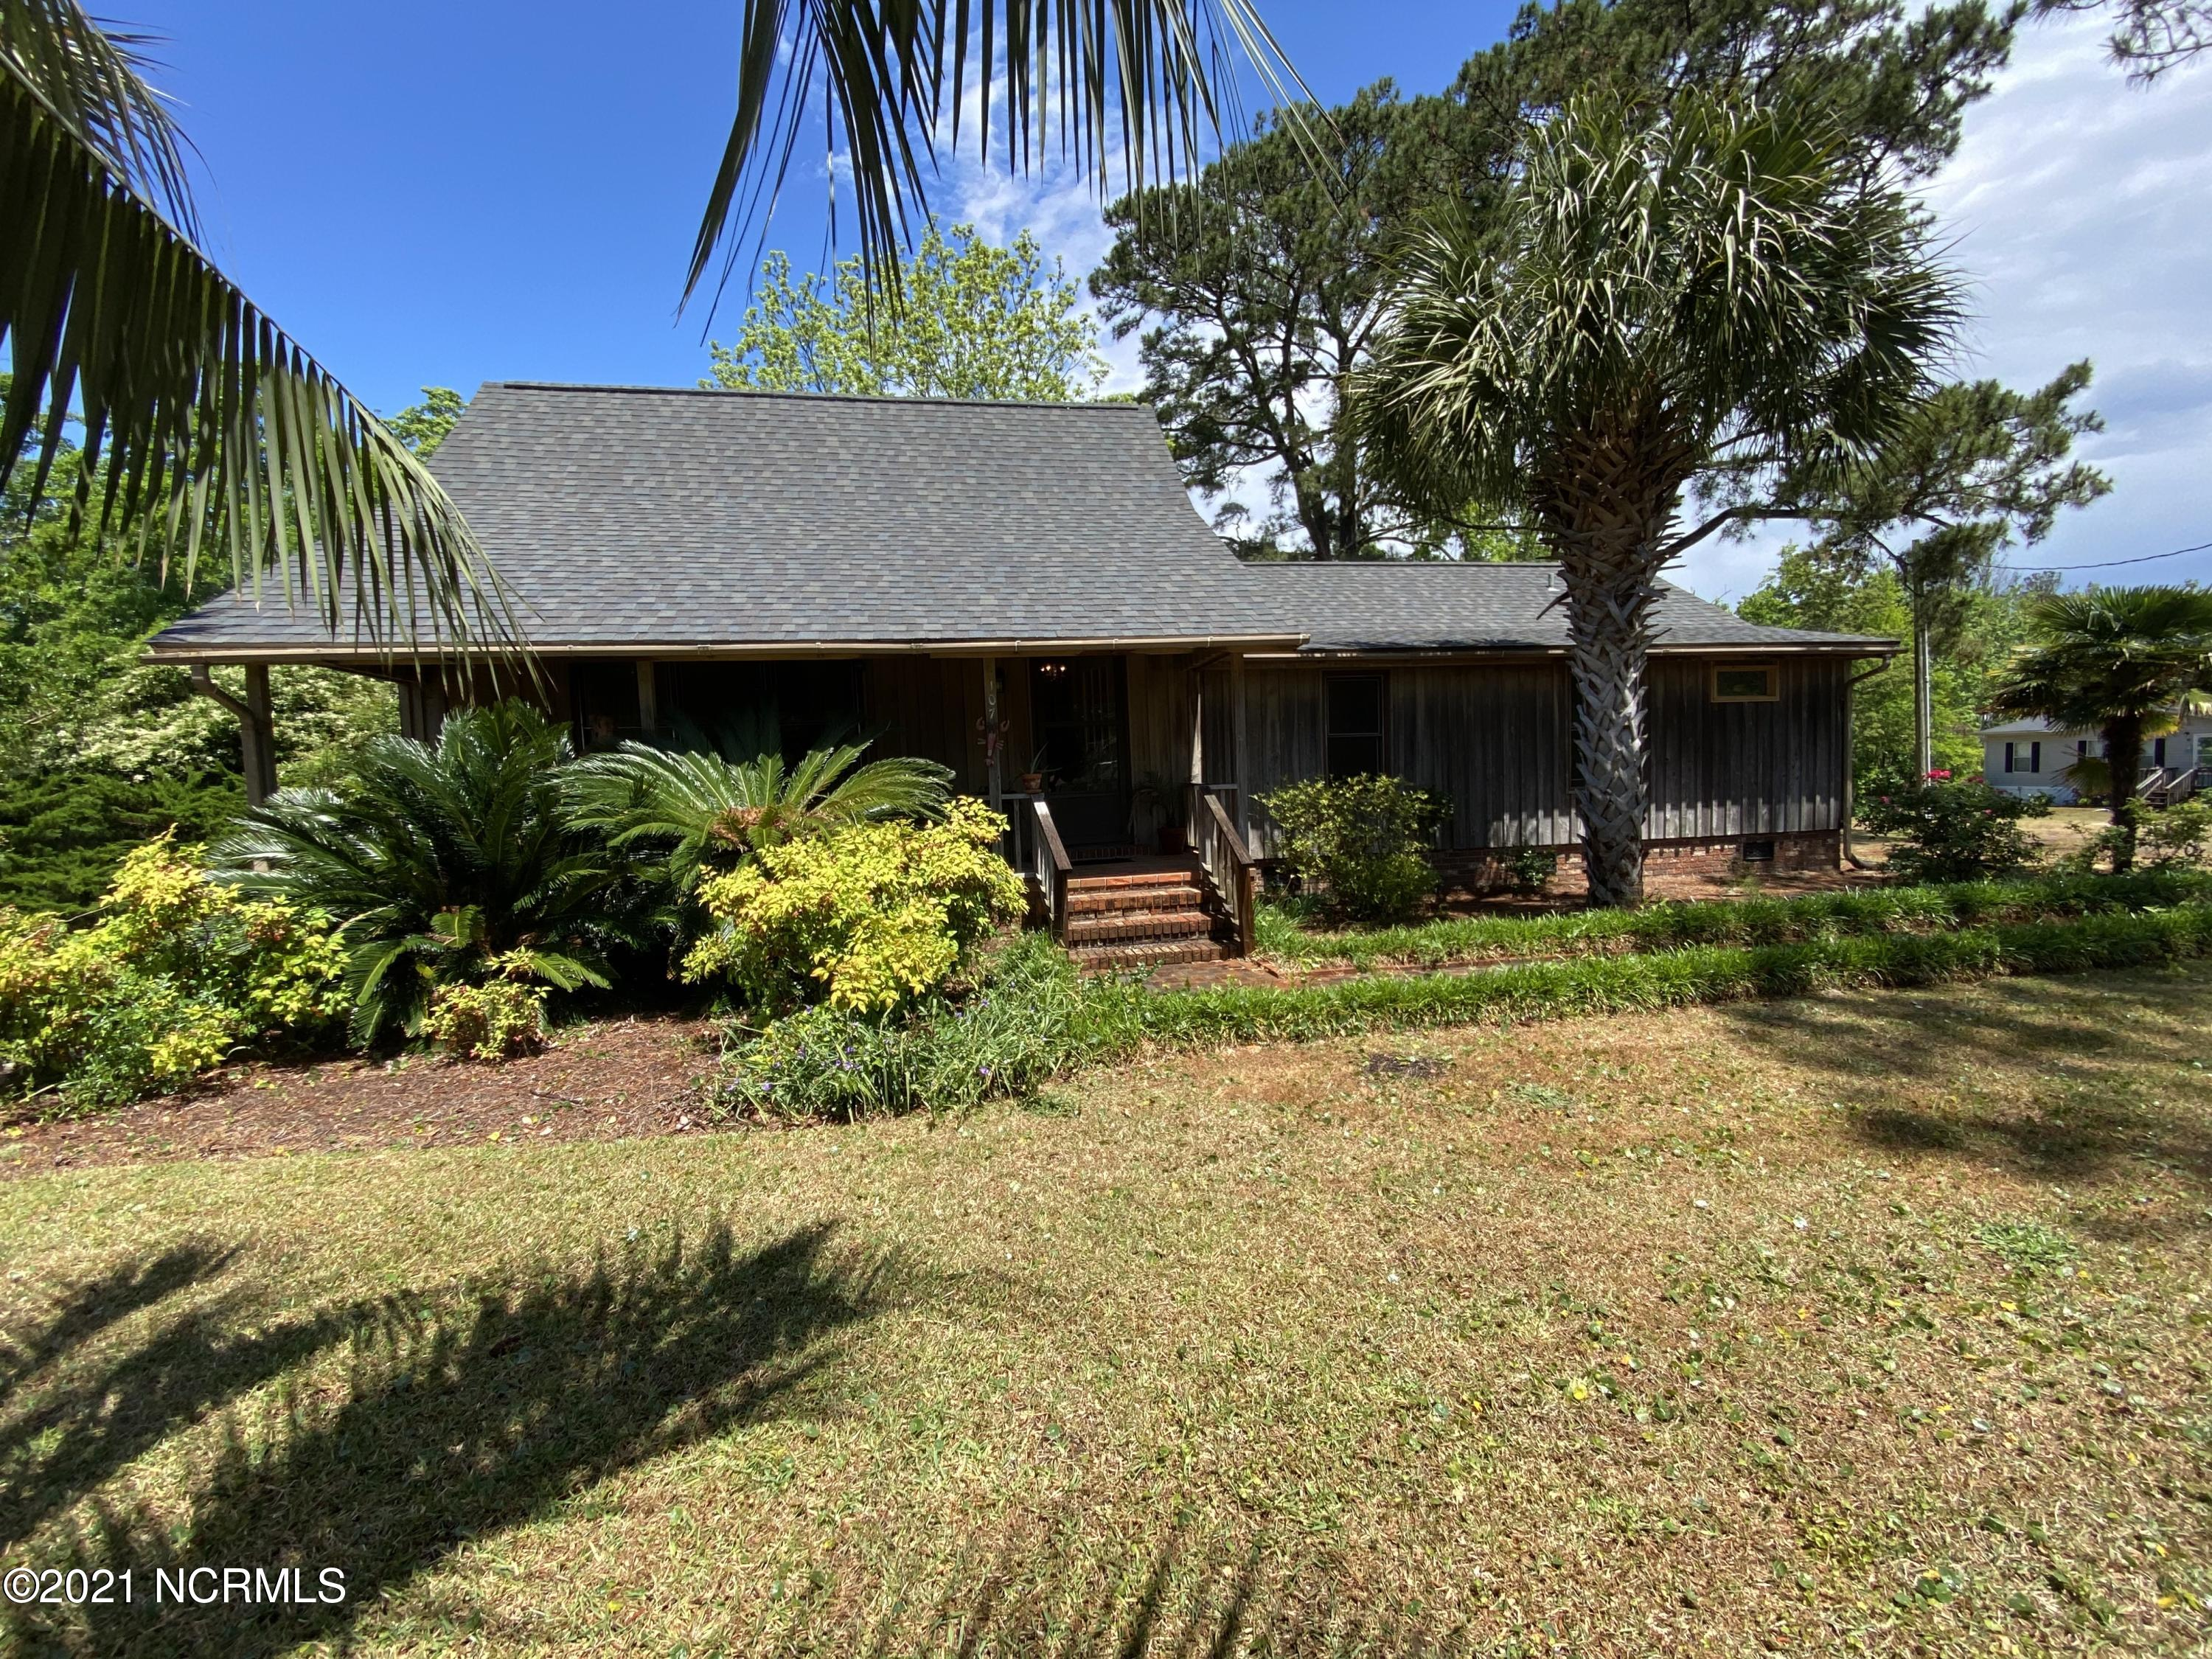 A rare find in the heart of Sneads Ferry, this home is a true gem! Enjoy the peace and tranquillity of coastal living in one of the most unique properties Onslow county has to offer. Secluded on Bumps Creek, this 3 bedroom 2 bath home boasts gorgeous cypress wood siding, wide plank oak flooring, and an ample amount of space and storage. The exterior offers a beautifully shaded front porch, large carport, and a screened in porch, ideal for relaxation. Enjoy those cool summer nights while enjoying views of the canal, Bumps Creek, and the sounds of nature from the natural pond in the back. Call today to schedule your tour